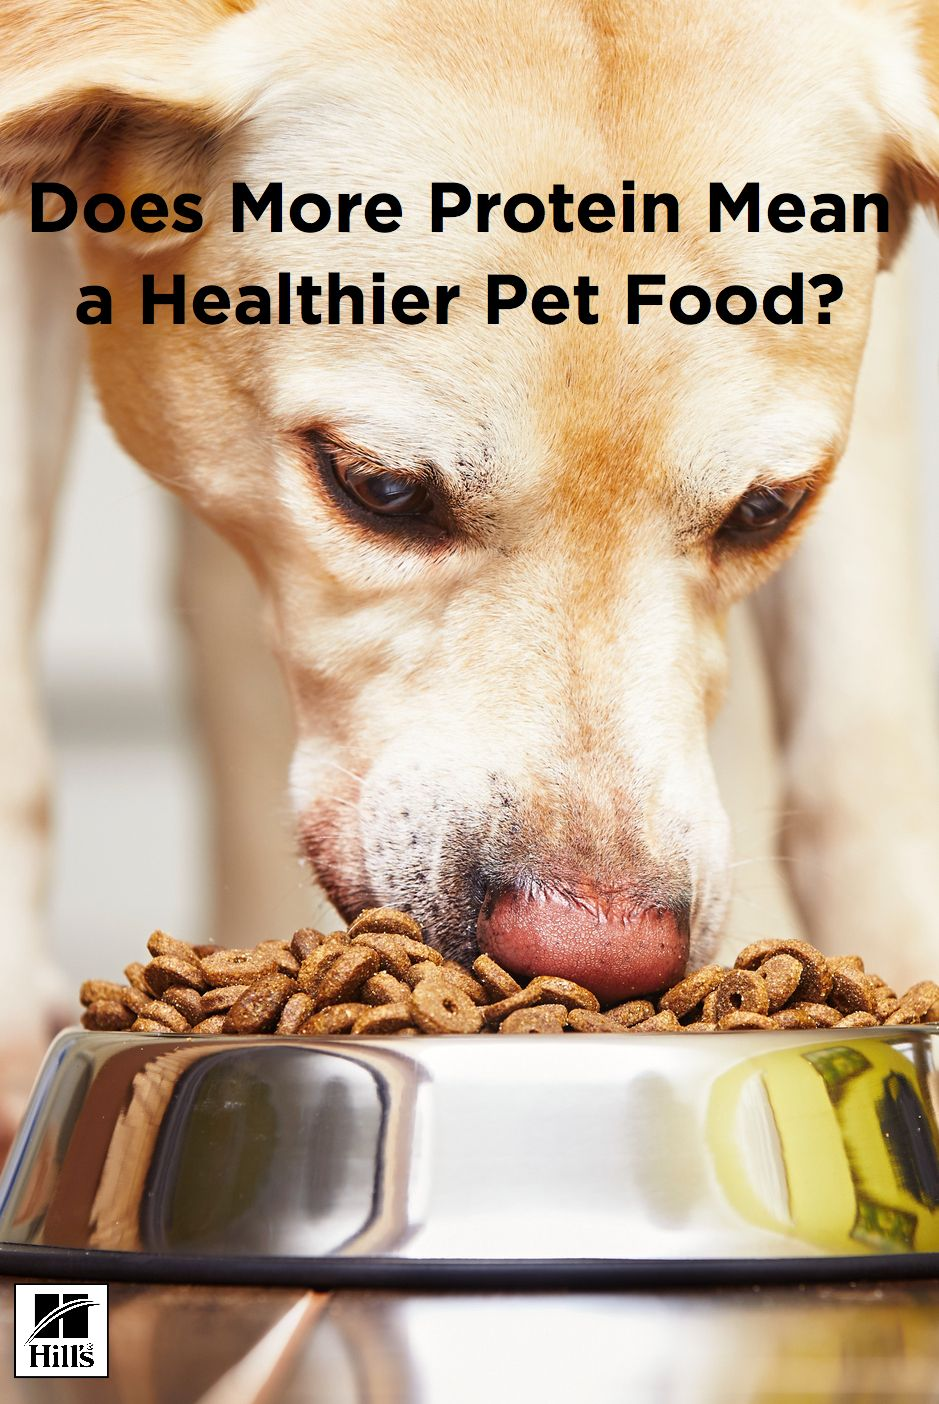 High protein pet food isnt always good for pets food